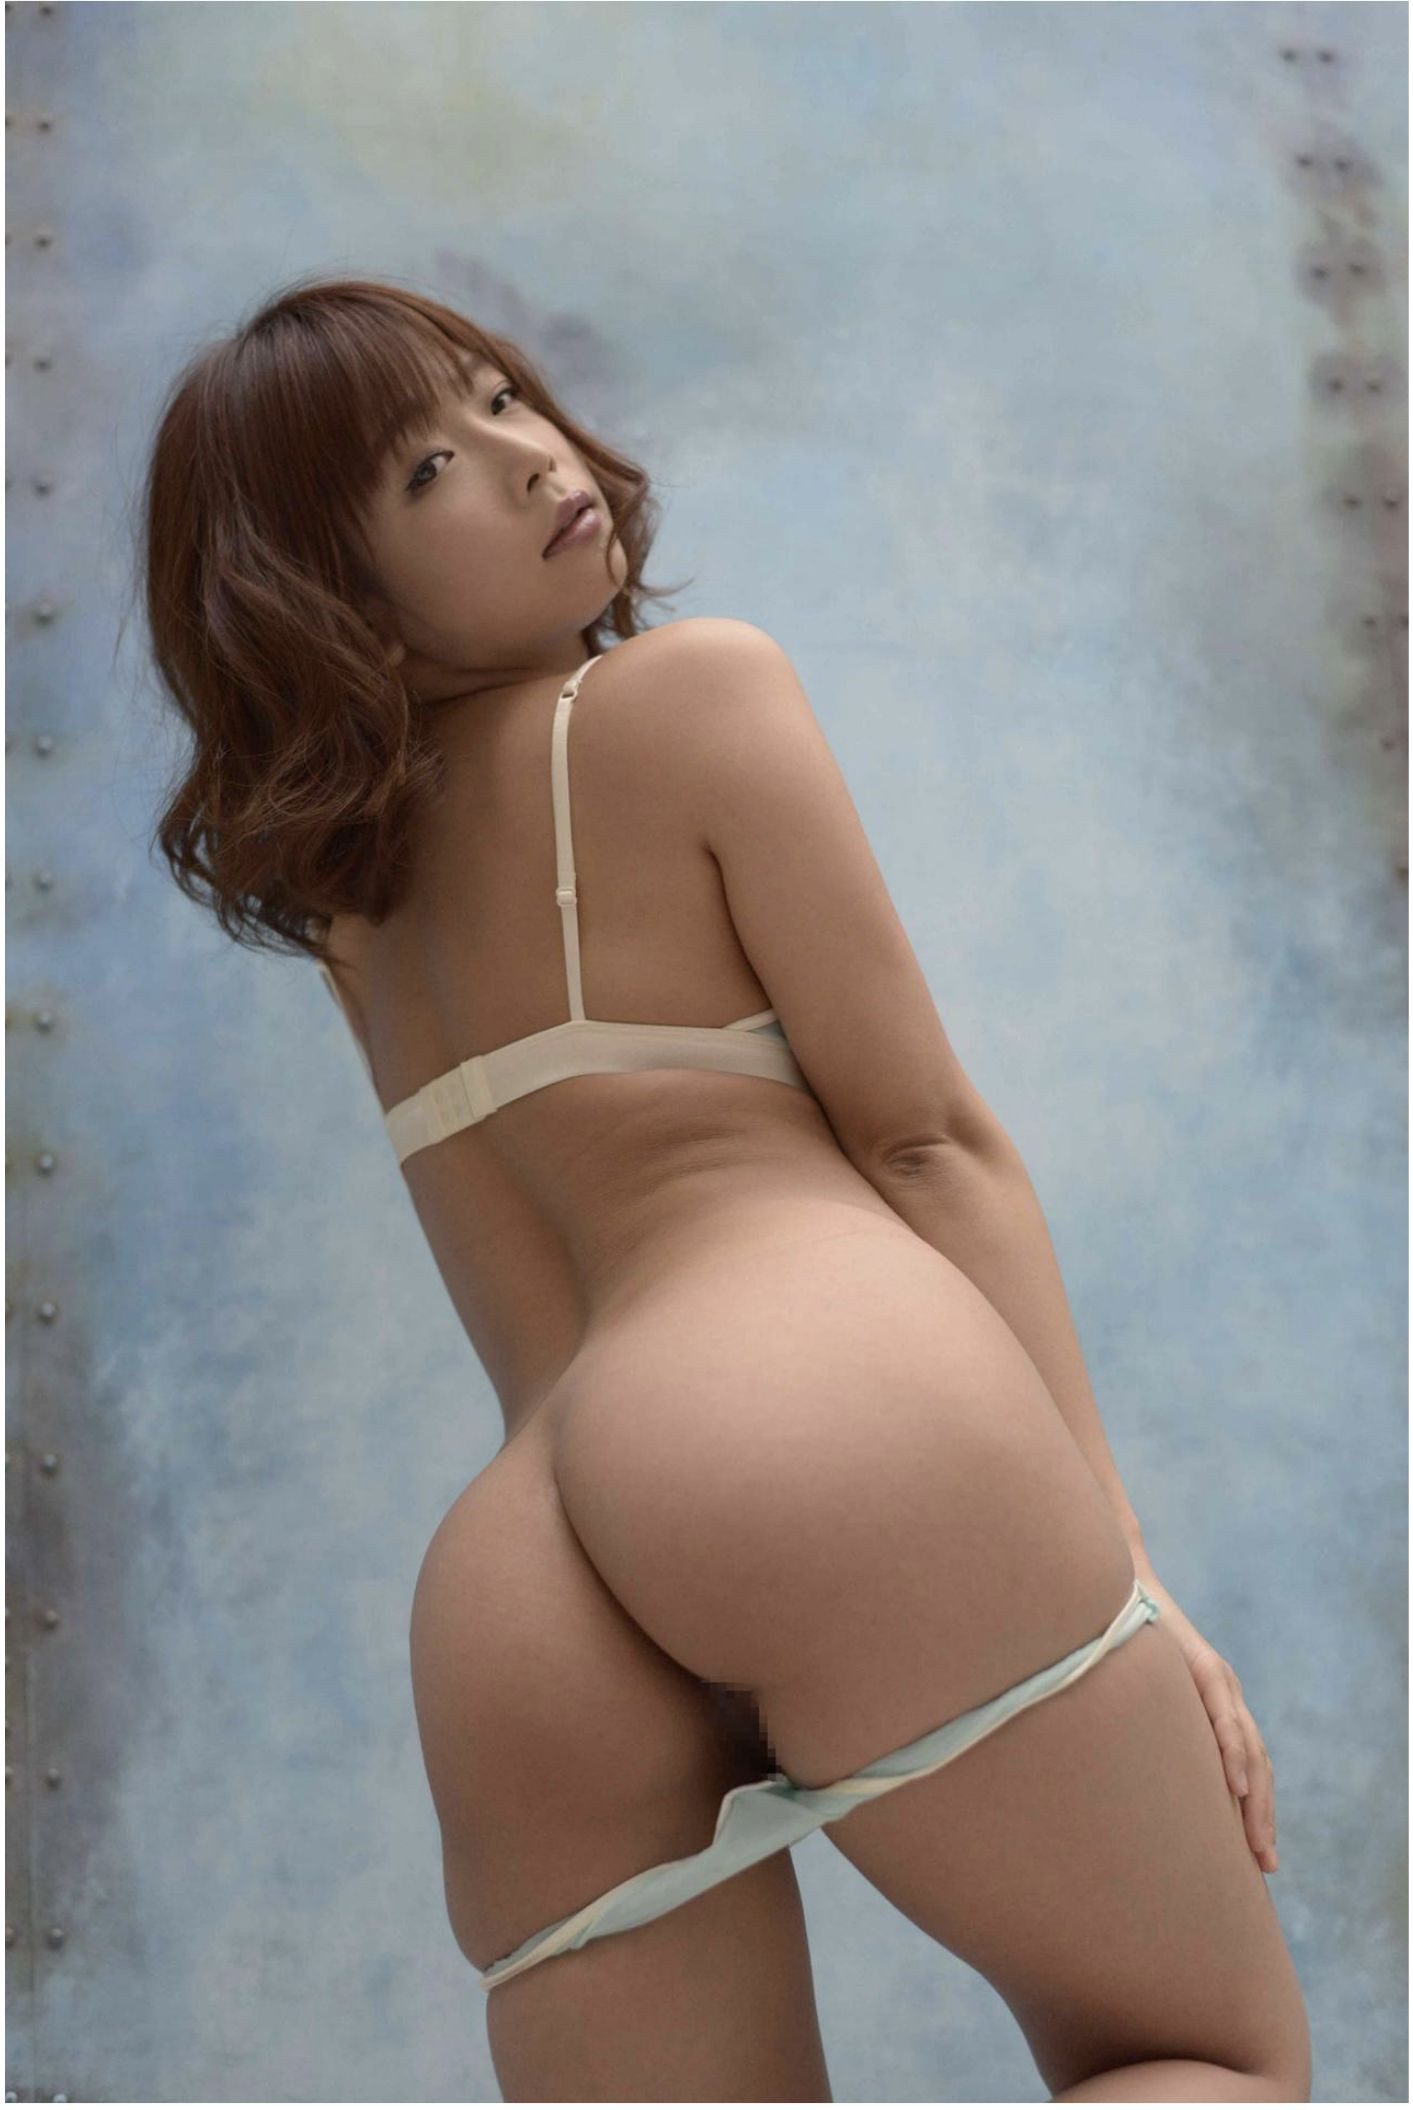 SOFT ON DEMAND GRAVURE COLLECTION 紗倉まな04 photo 092